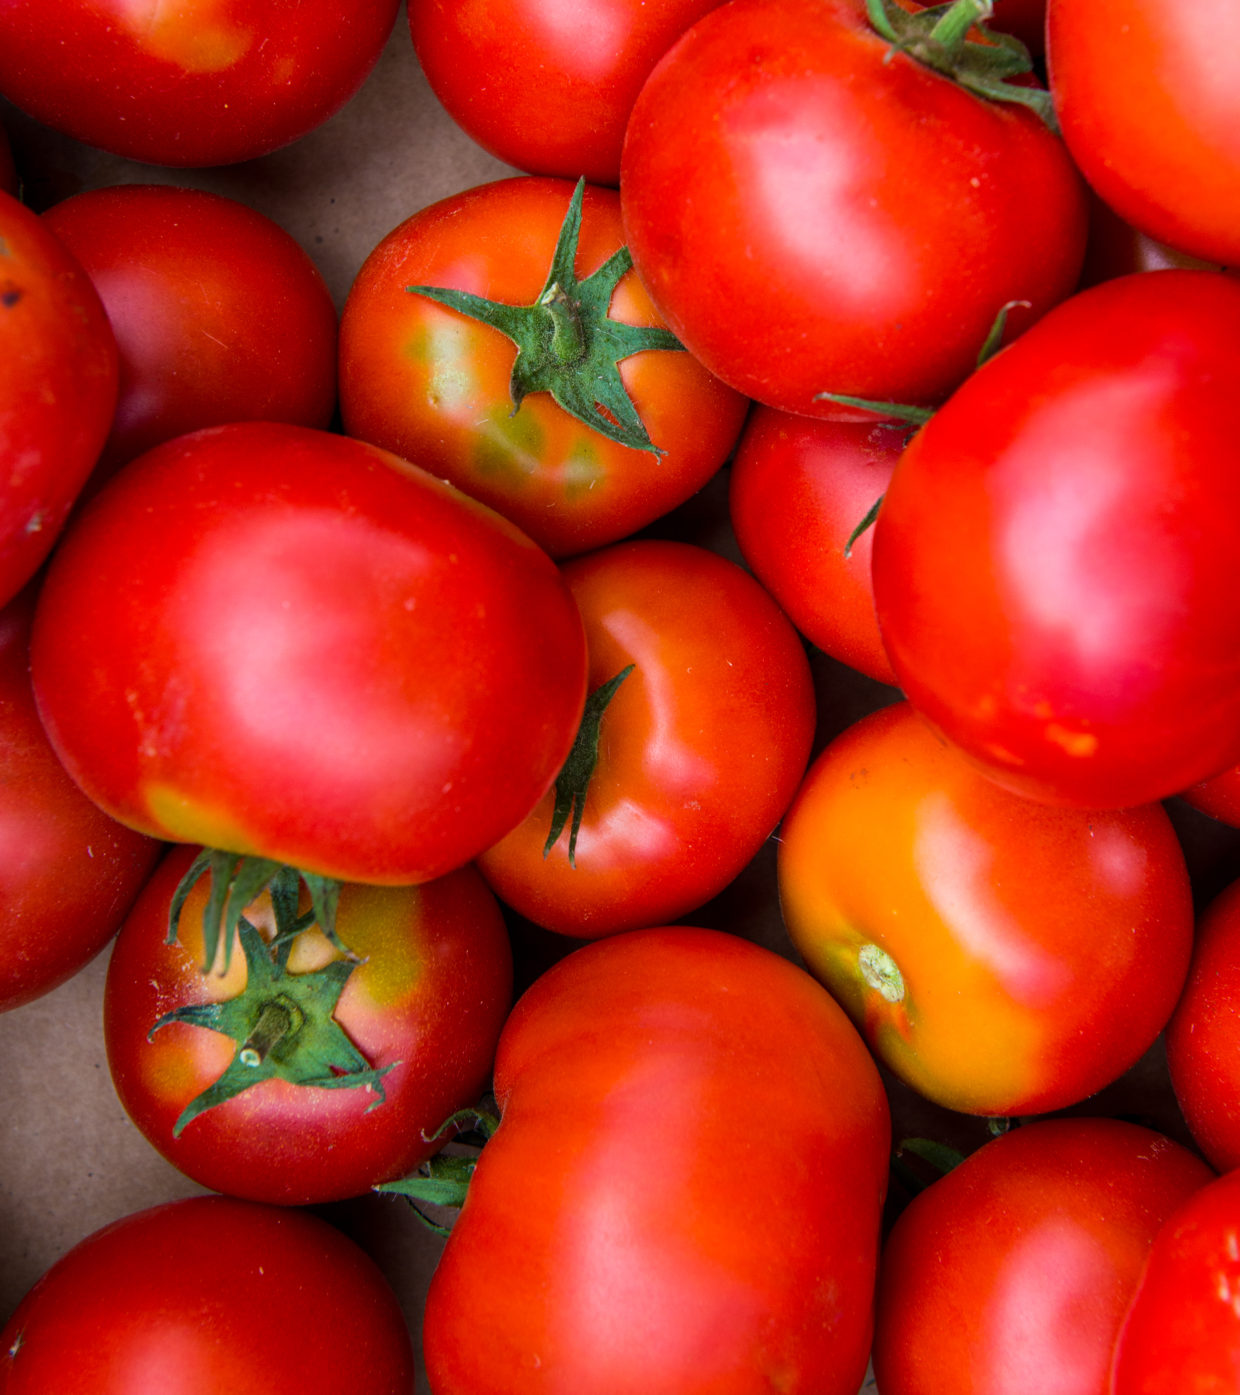 Tomato lovers: Grow the best by recognizing and solving common problems